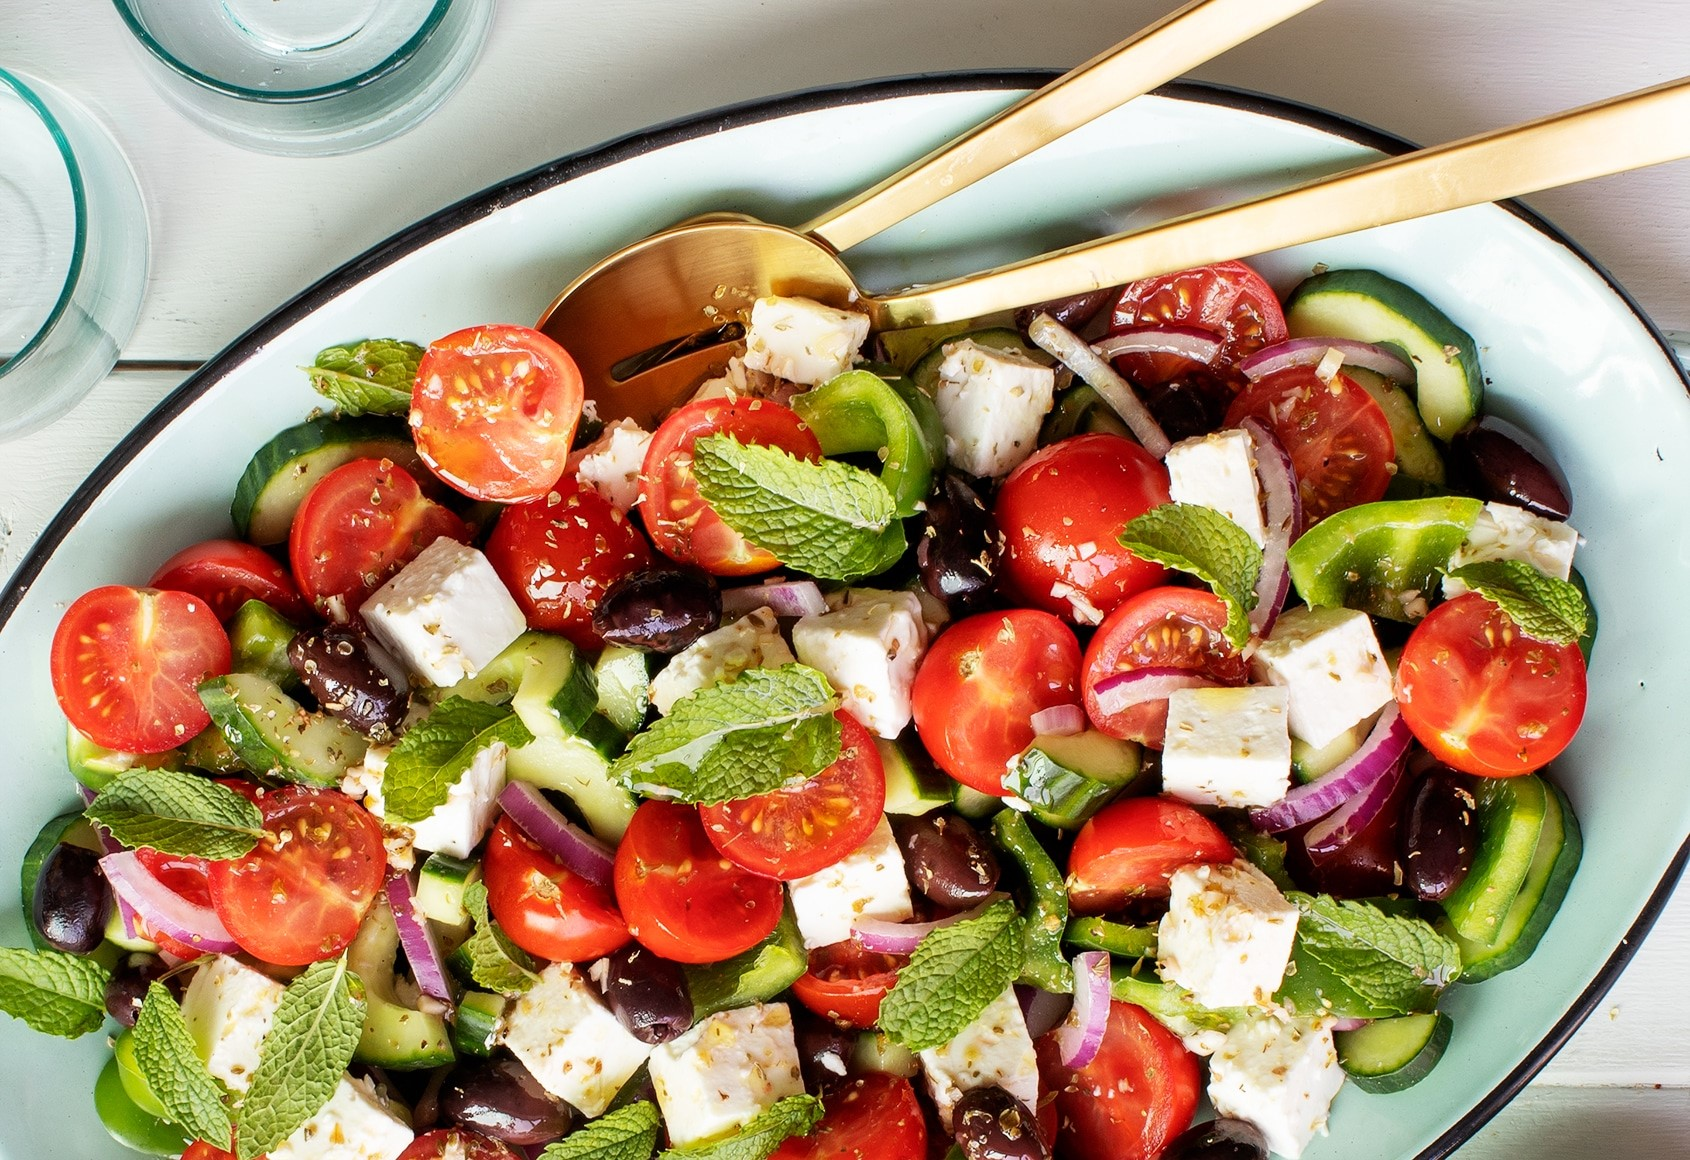 Self-isolation recipe : feta salad image